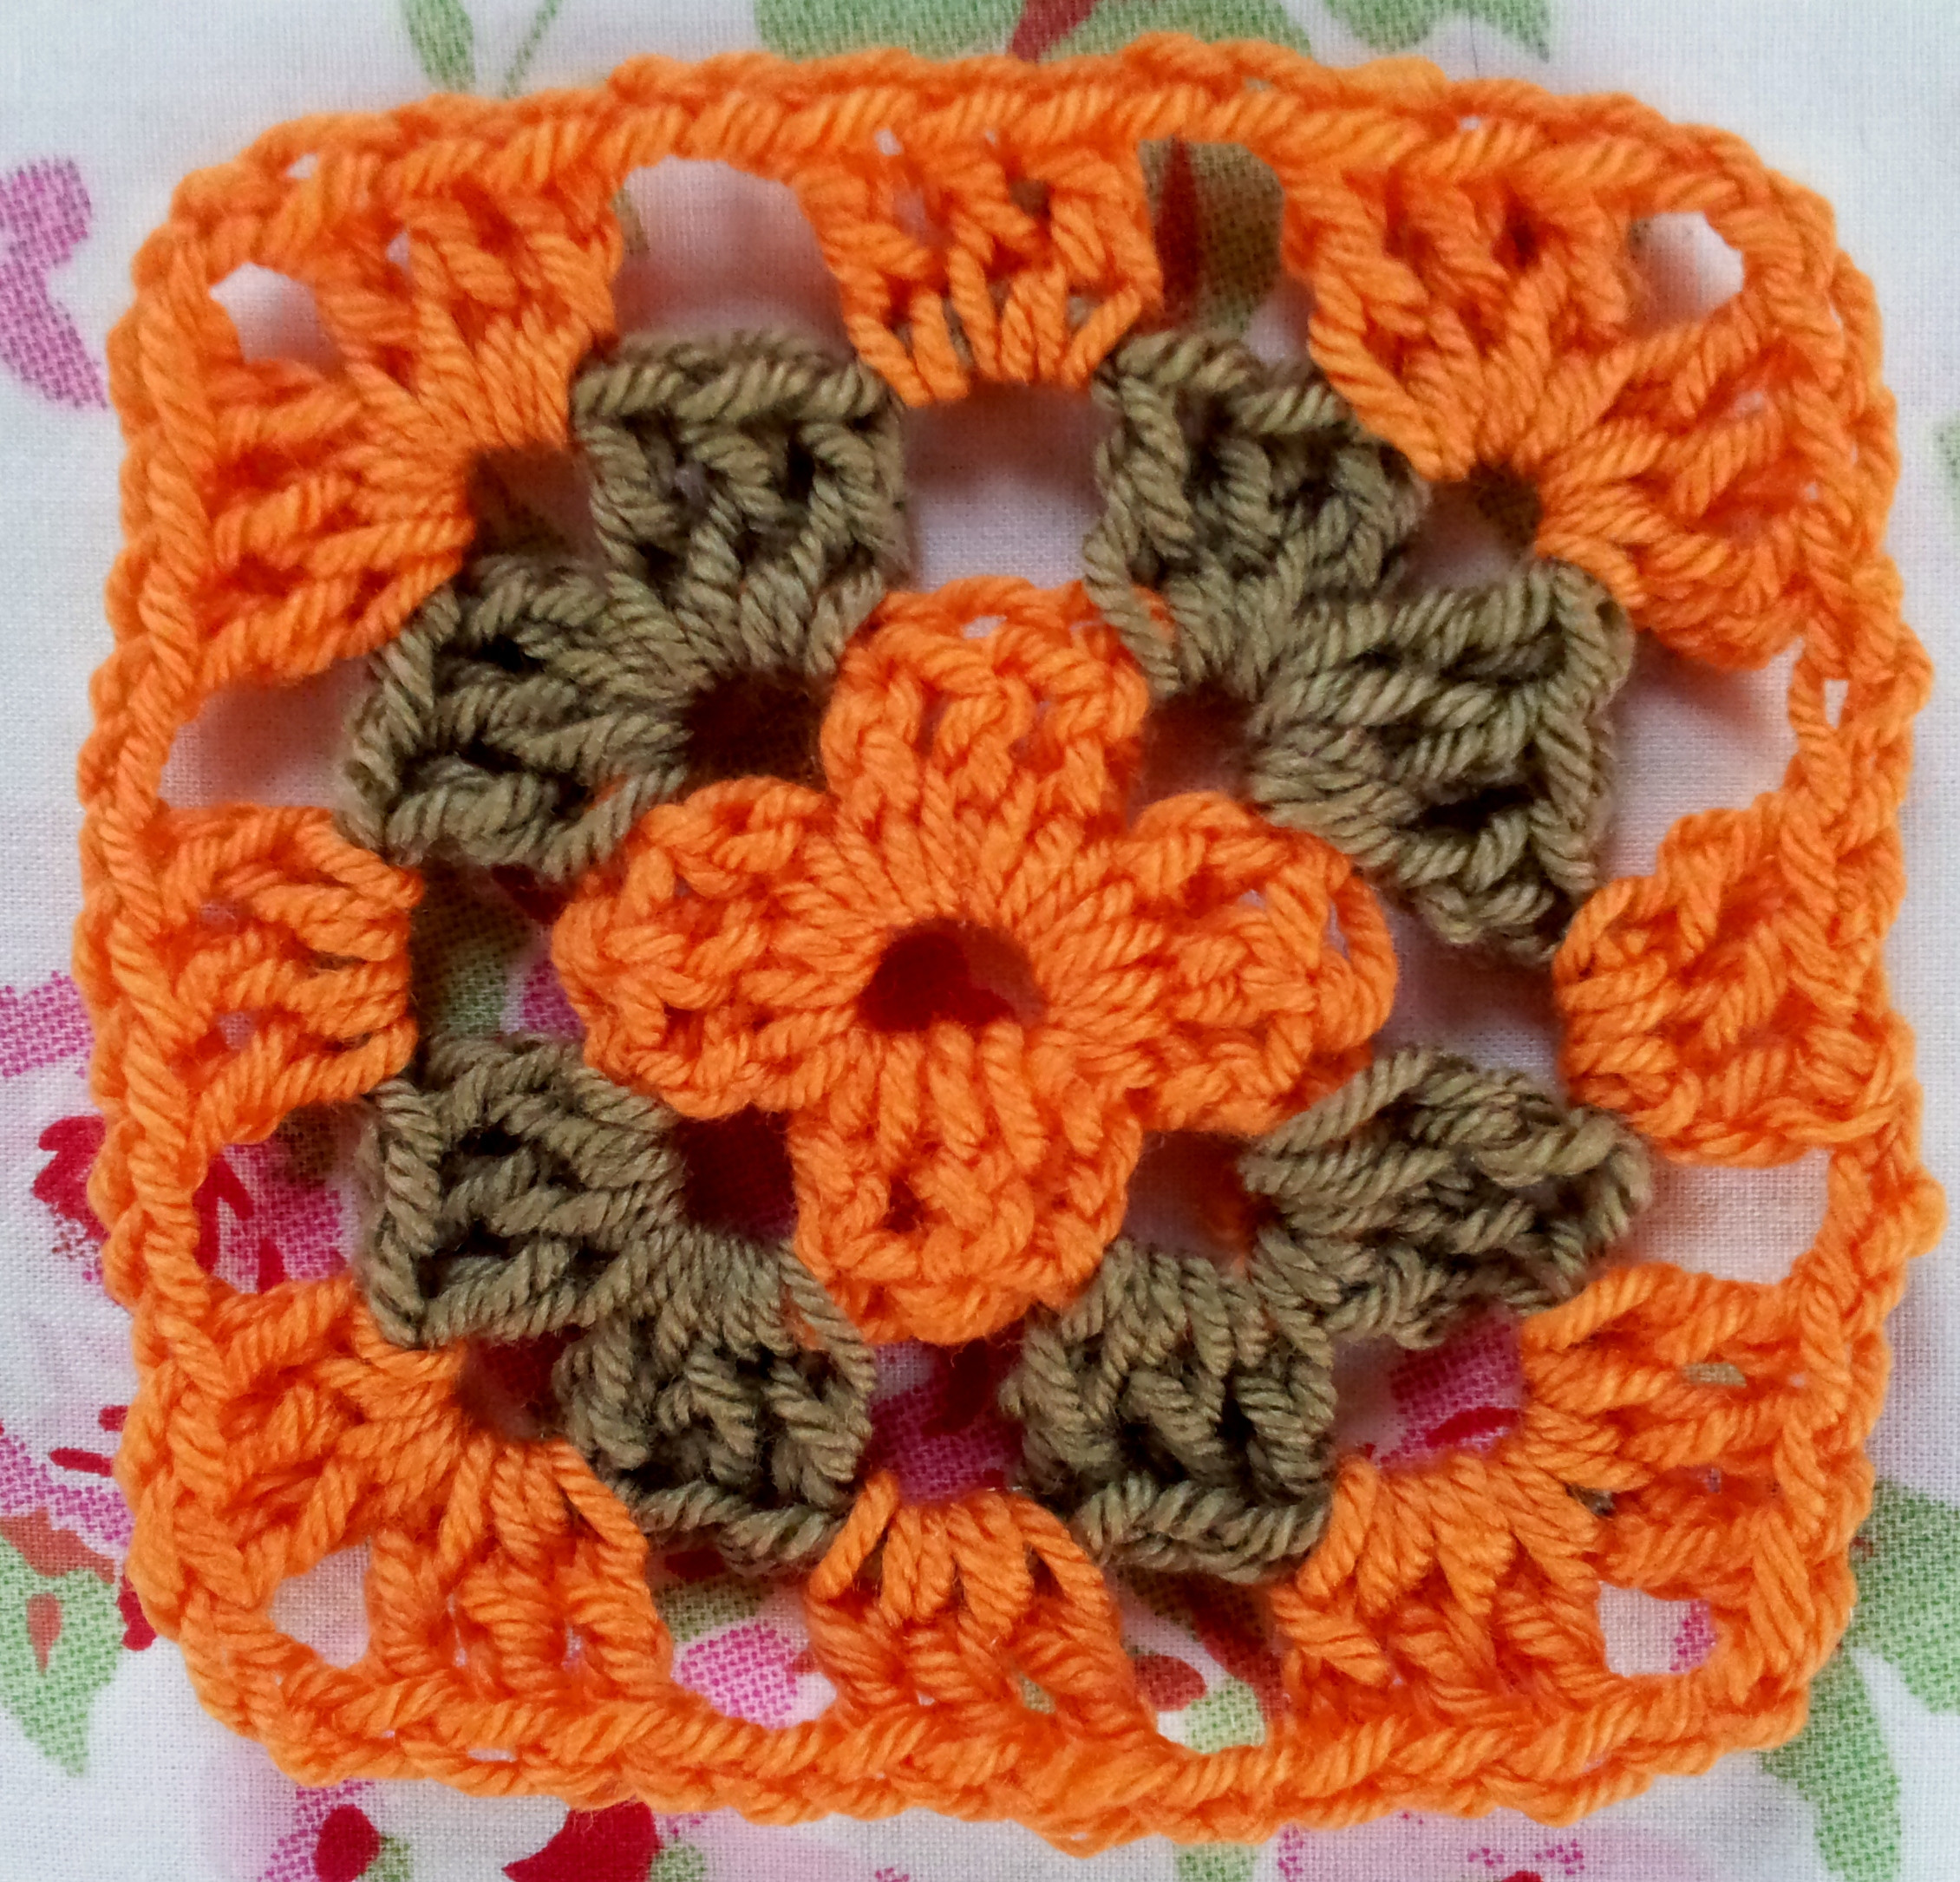 Inspirational Quick and Easy Crochet First Makes Granny Square for Beginners Of Marvelous 46 Pics Granny Square for Beginners